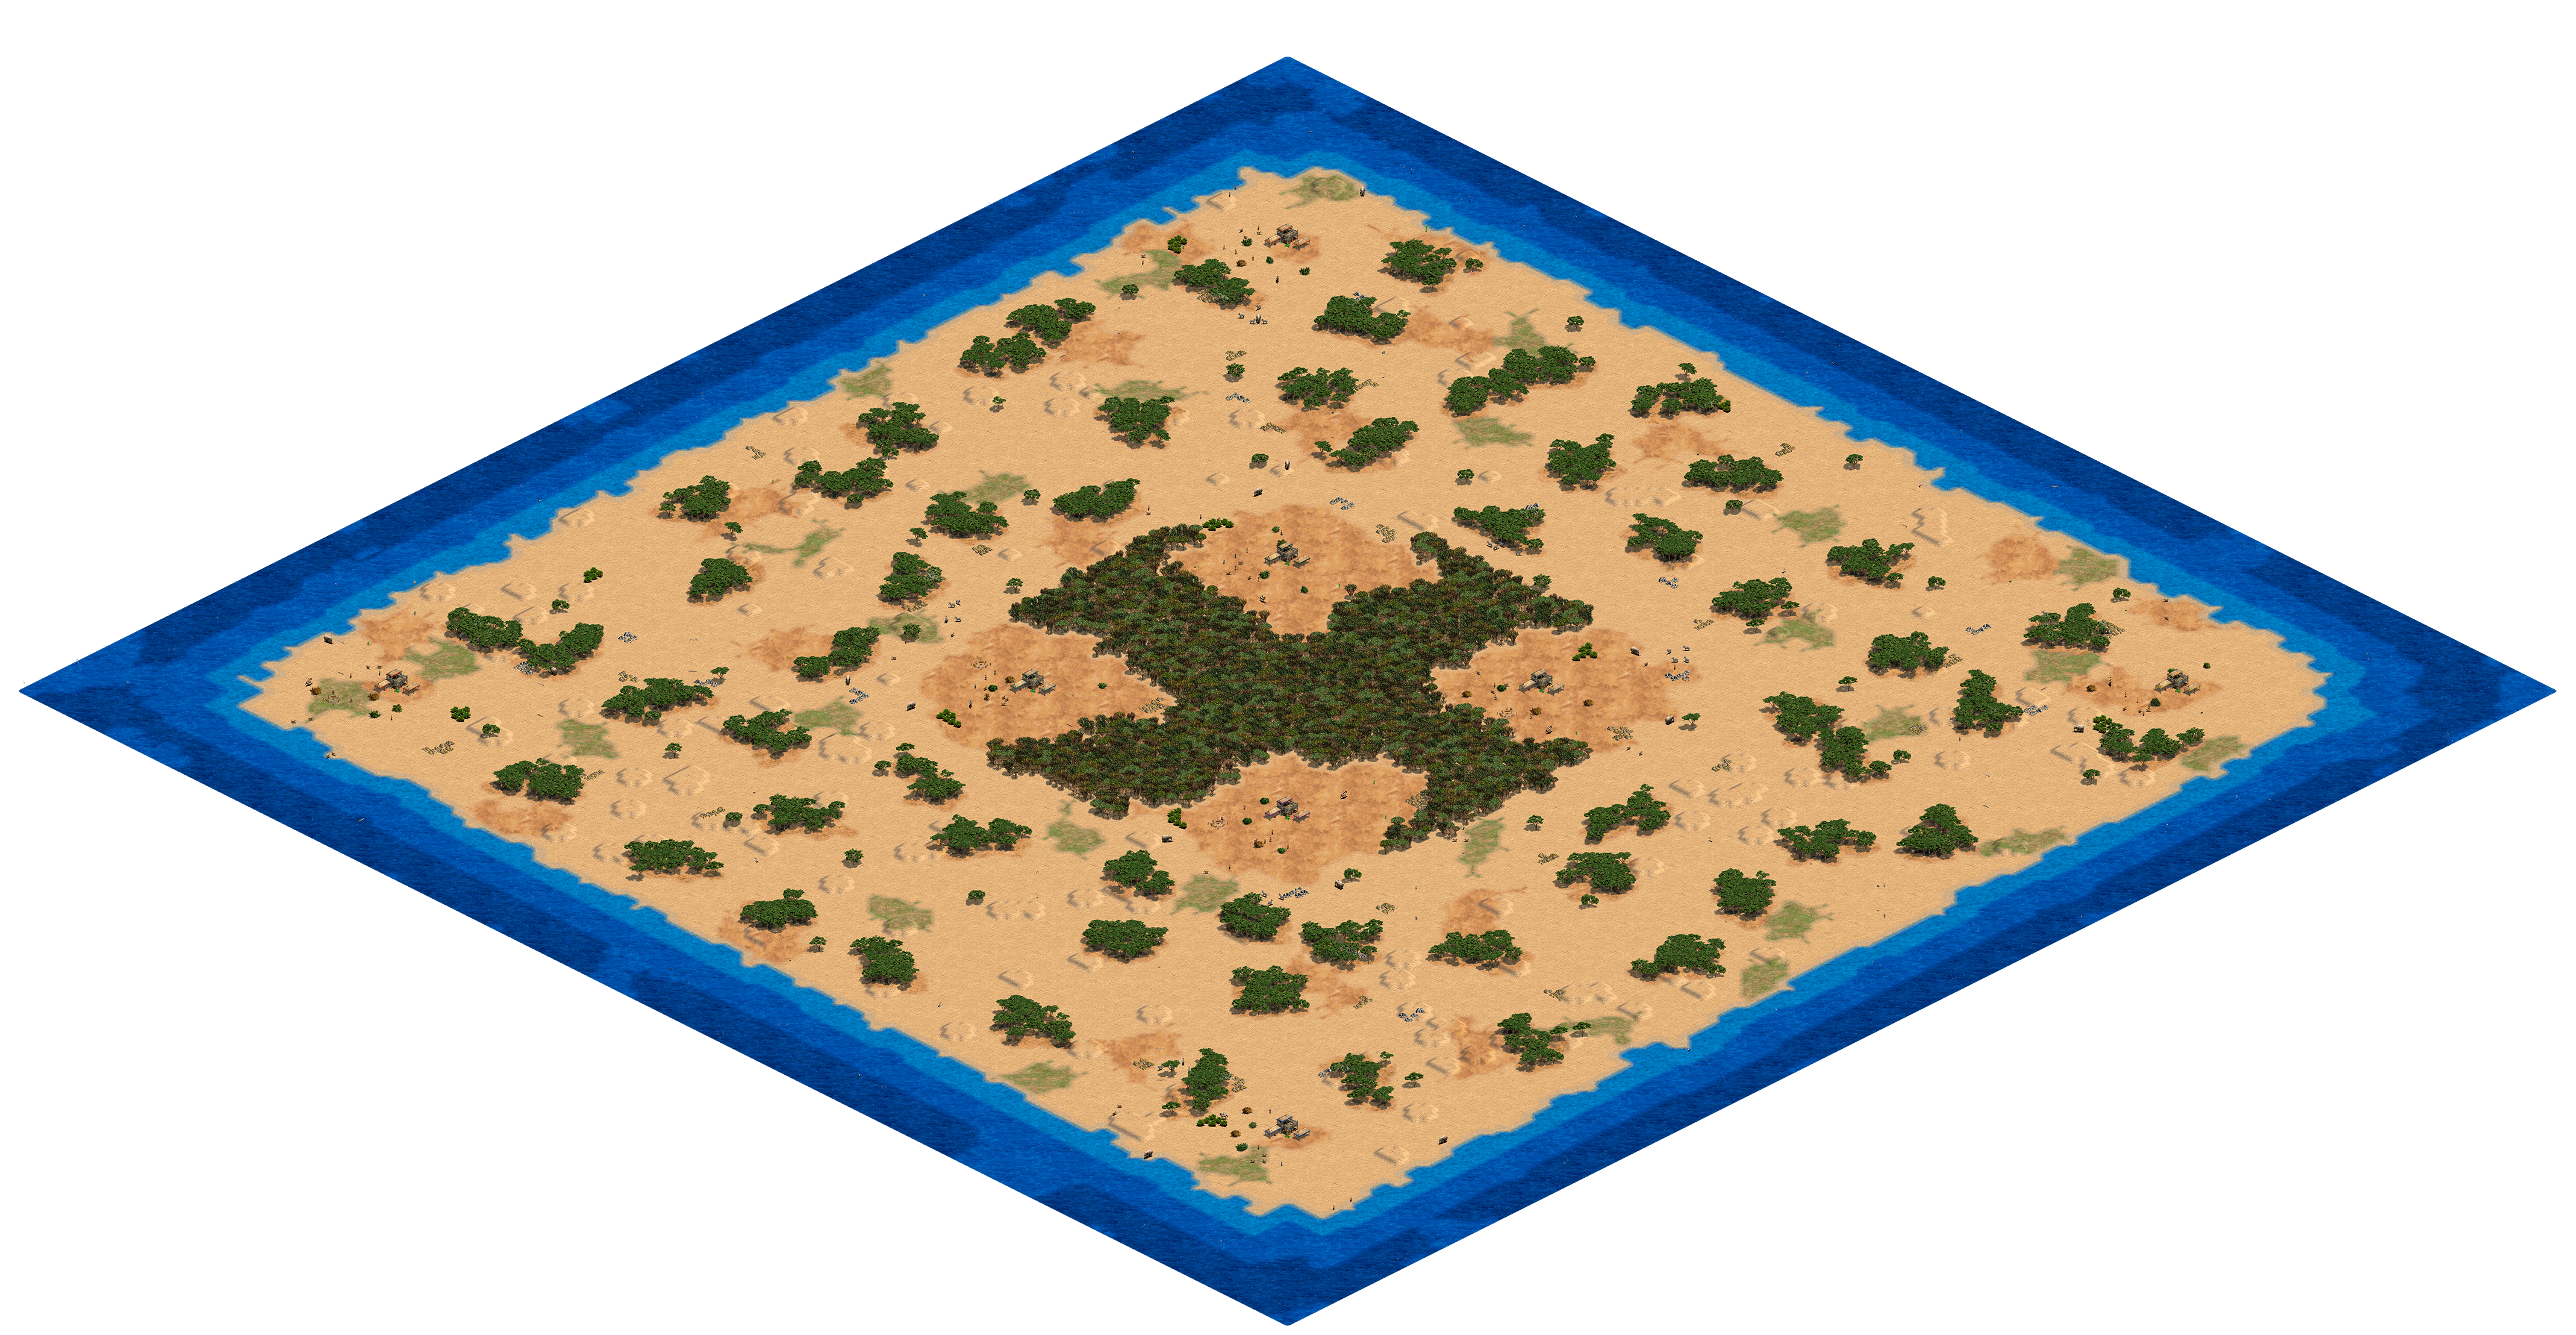 Tropical - 8 Player Map.png